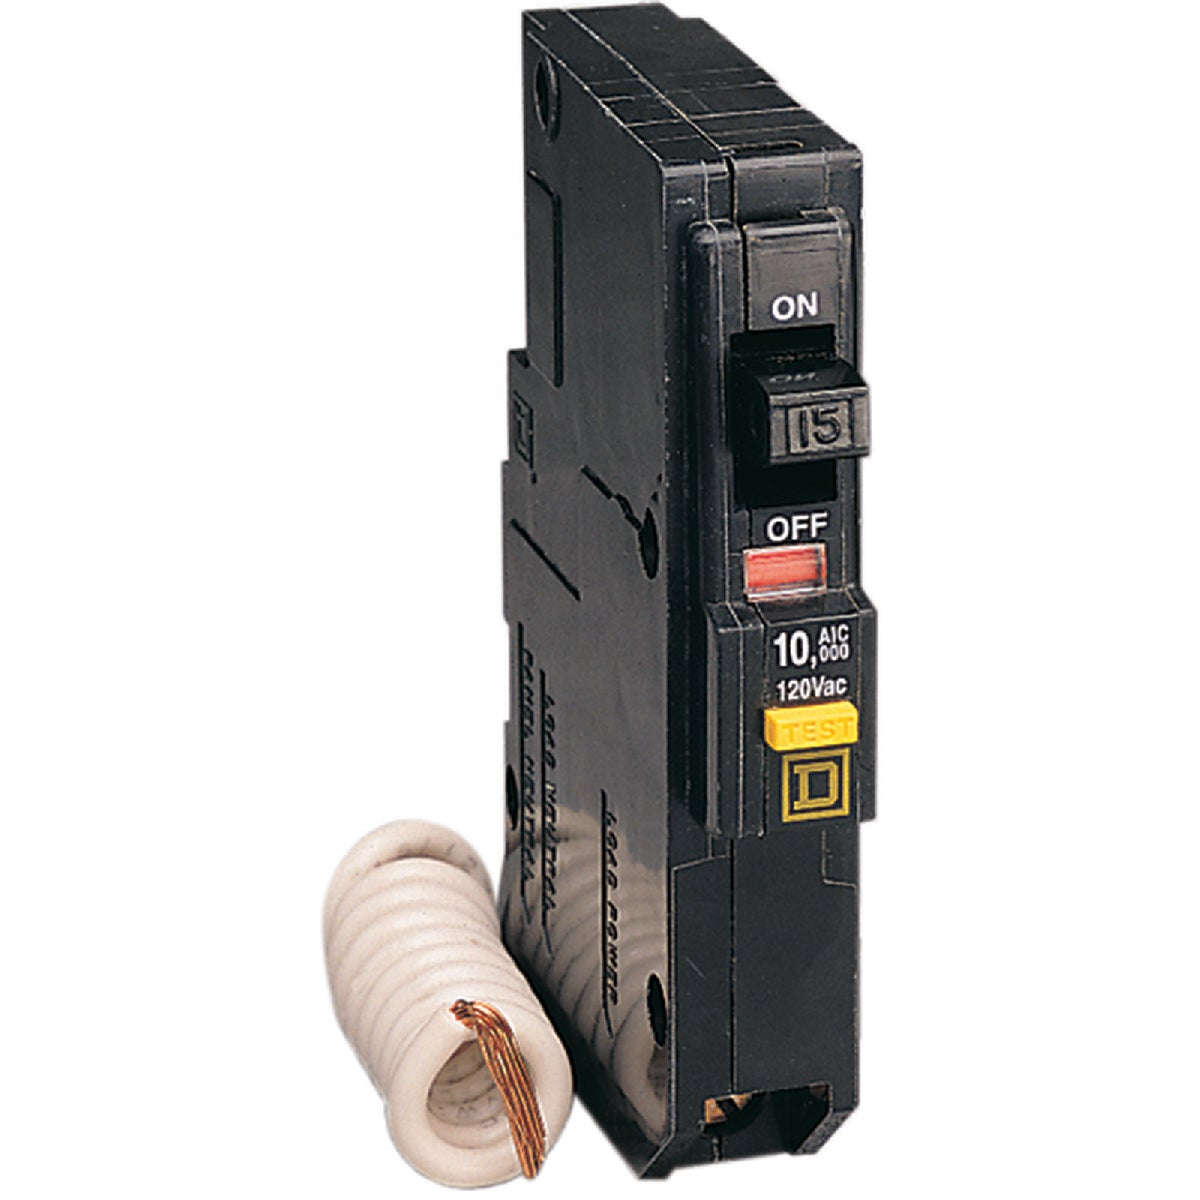 20A GFI CIRCUIT BREAKER - QO120GFICP by Square D Co